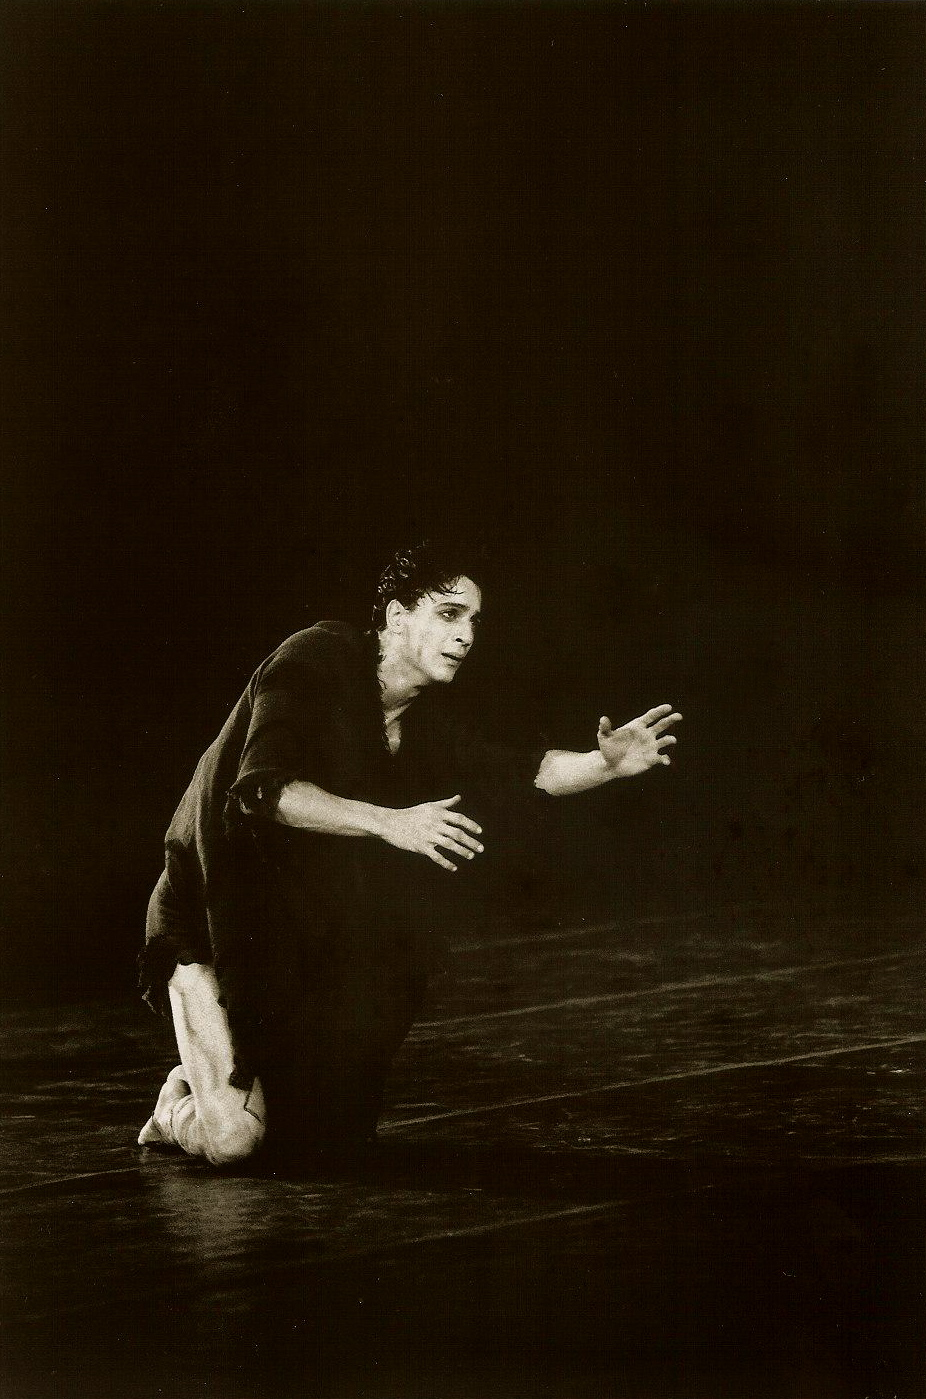 Le Fils prodigue G.Balanchine